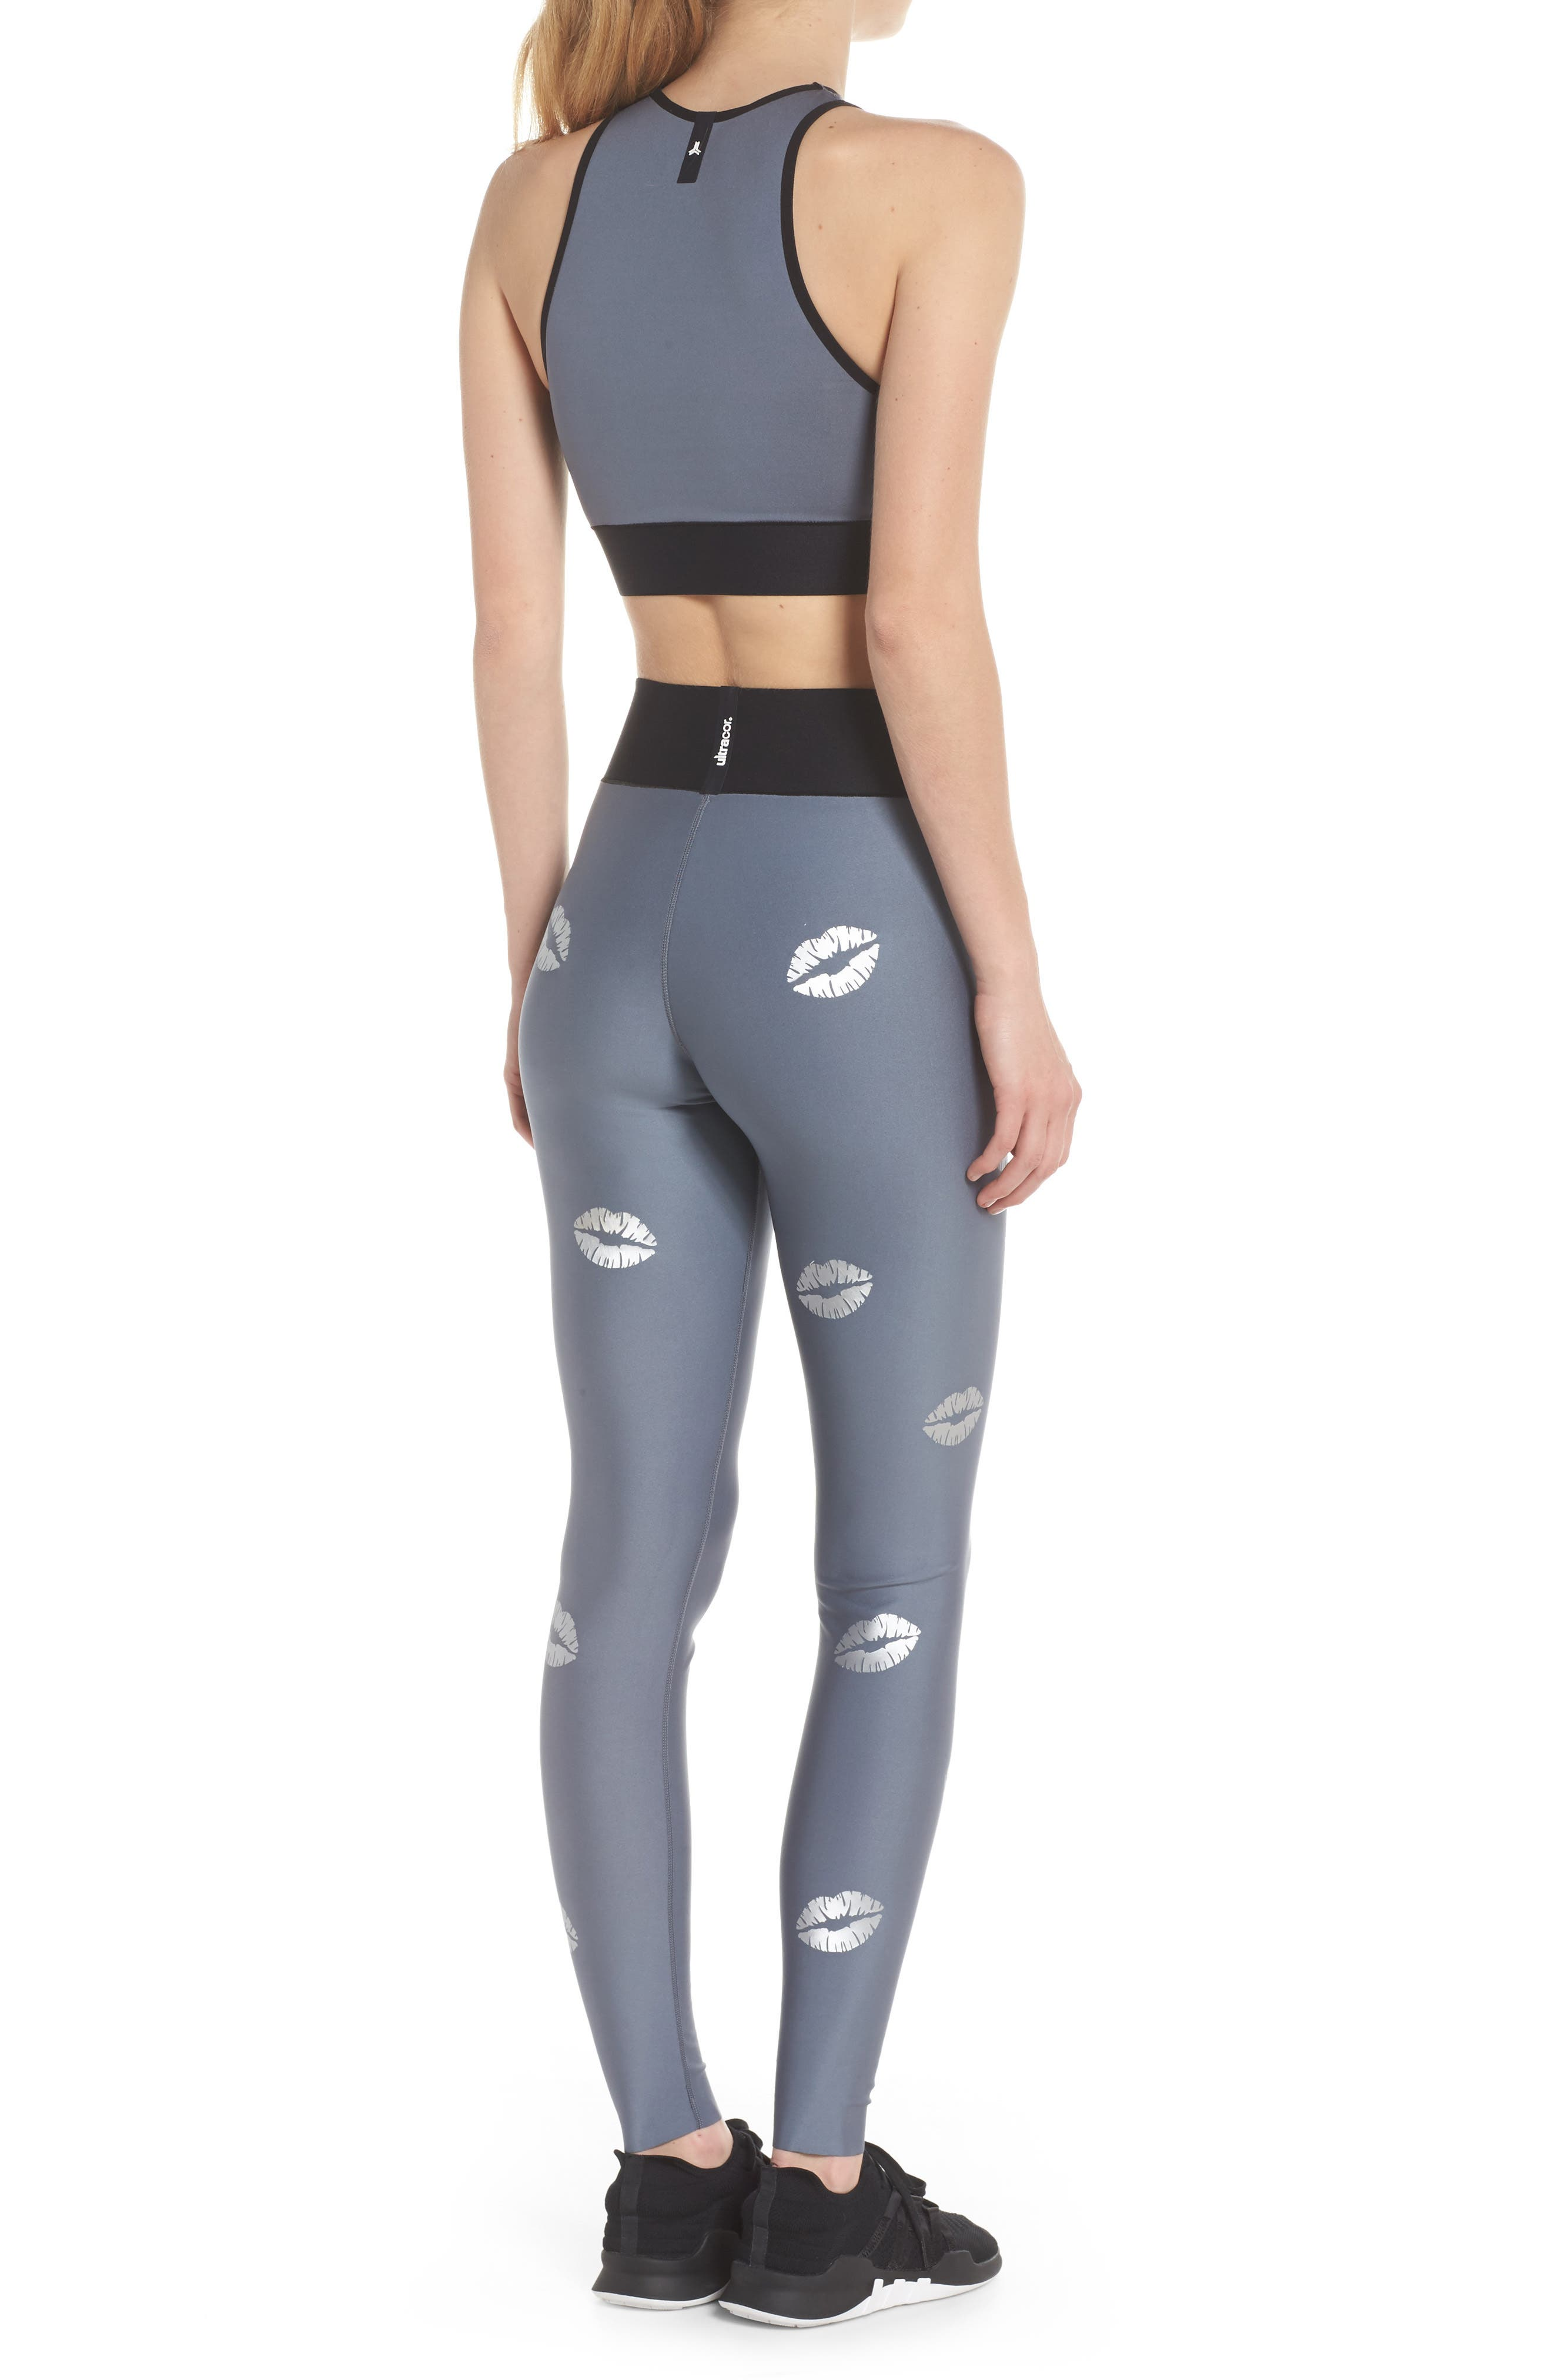 Altitude Lux Make Out Crop Top,                             Alternate thumbnail 7, color,                             Silver Brushed Steel